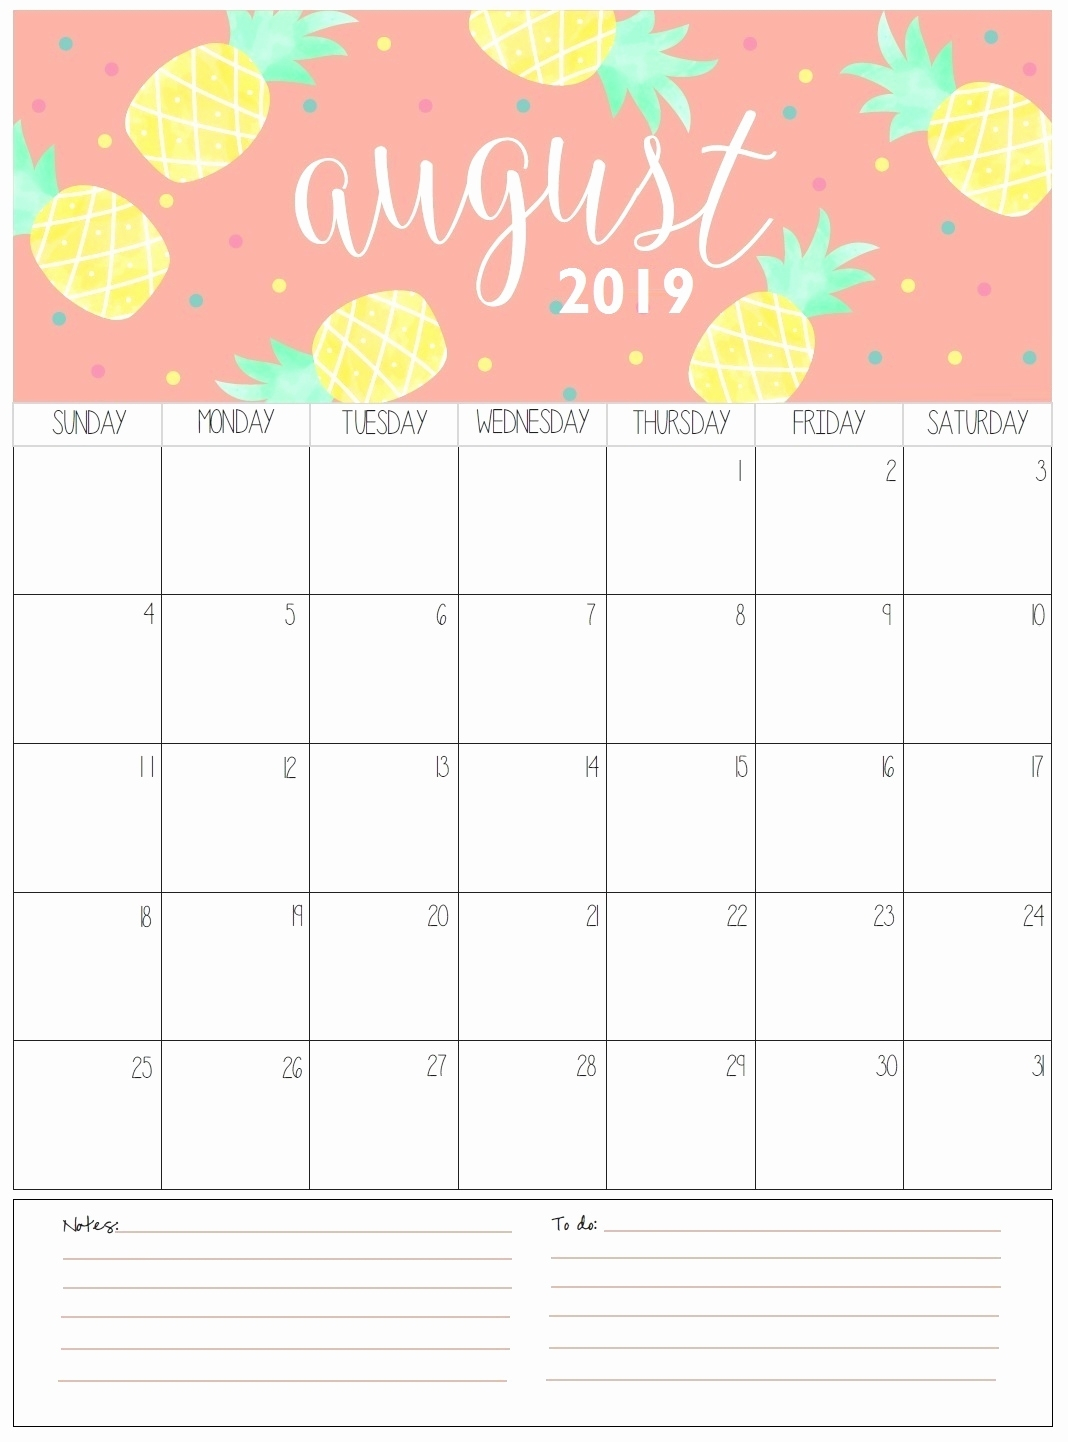 Catch A4 August 2019 Calendar Printable ⋆ The Best